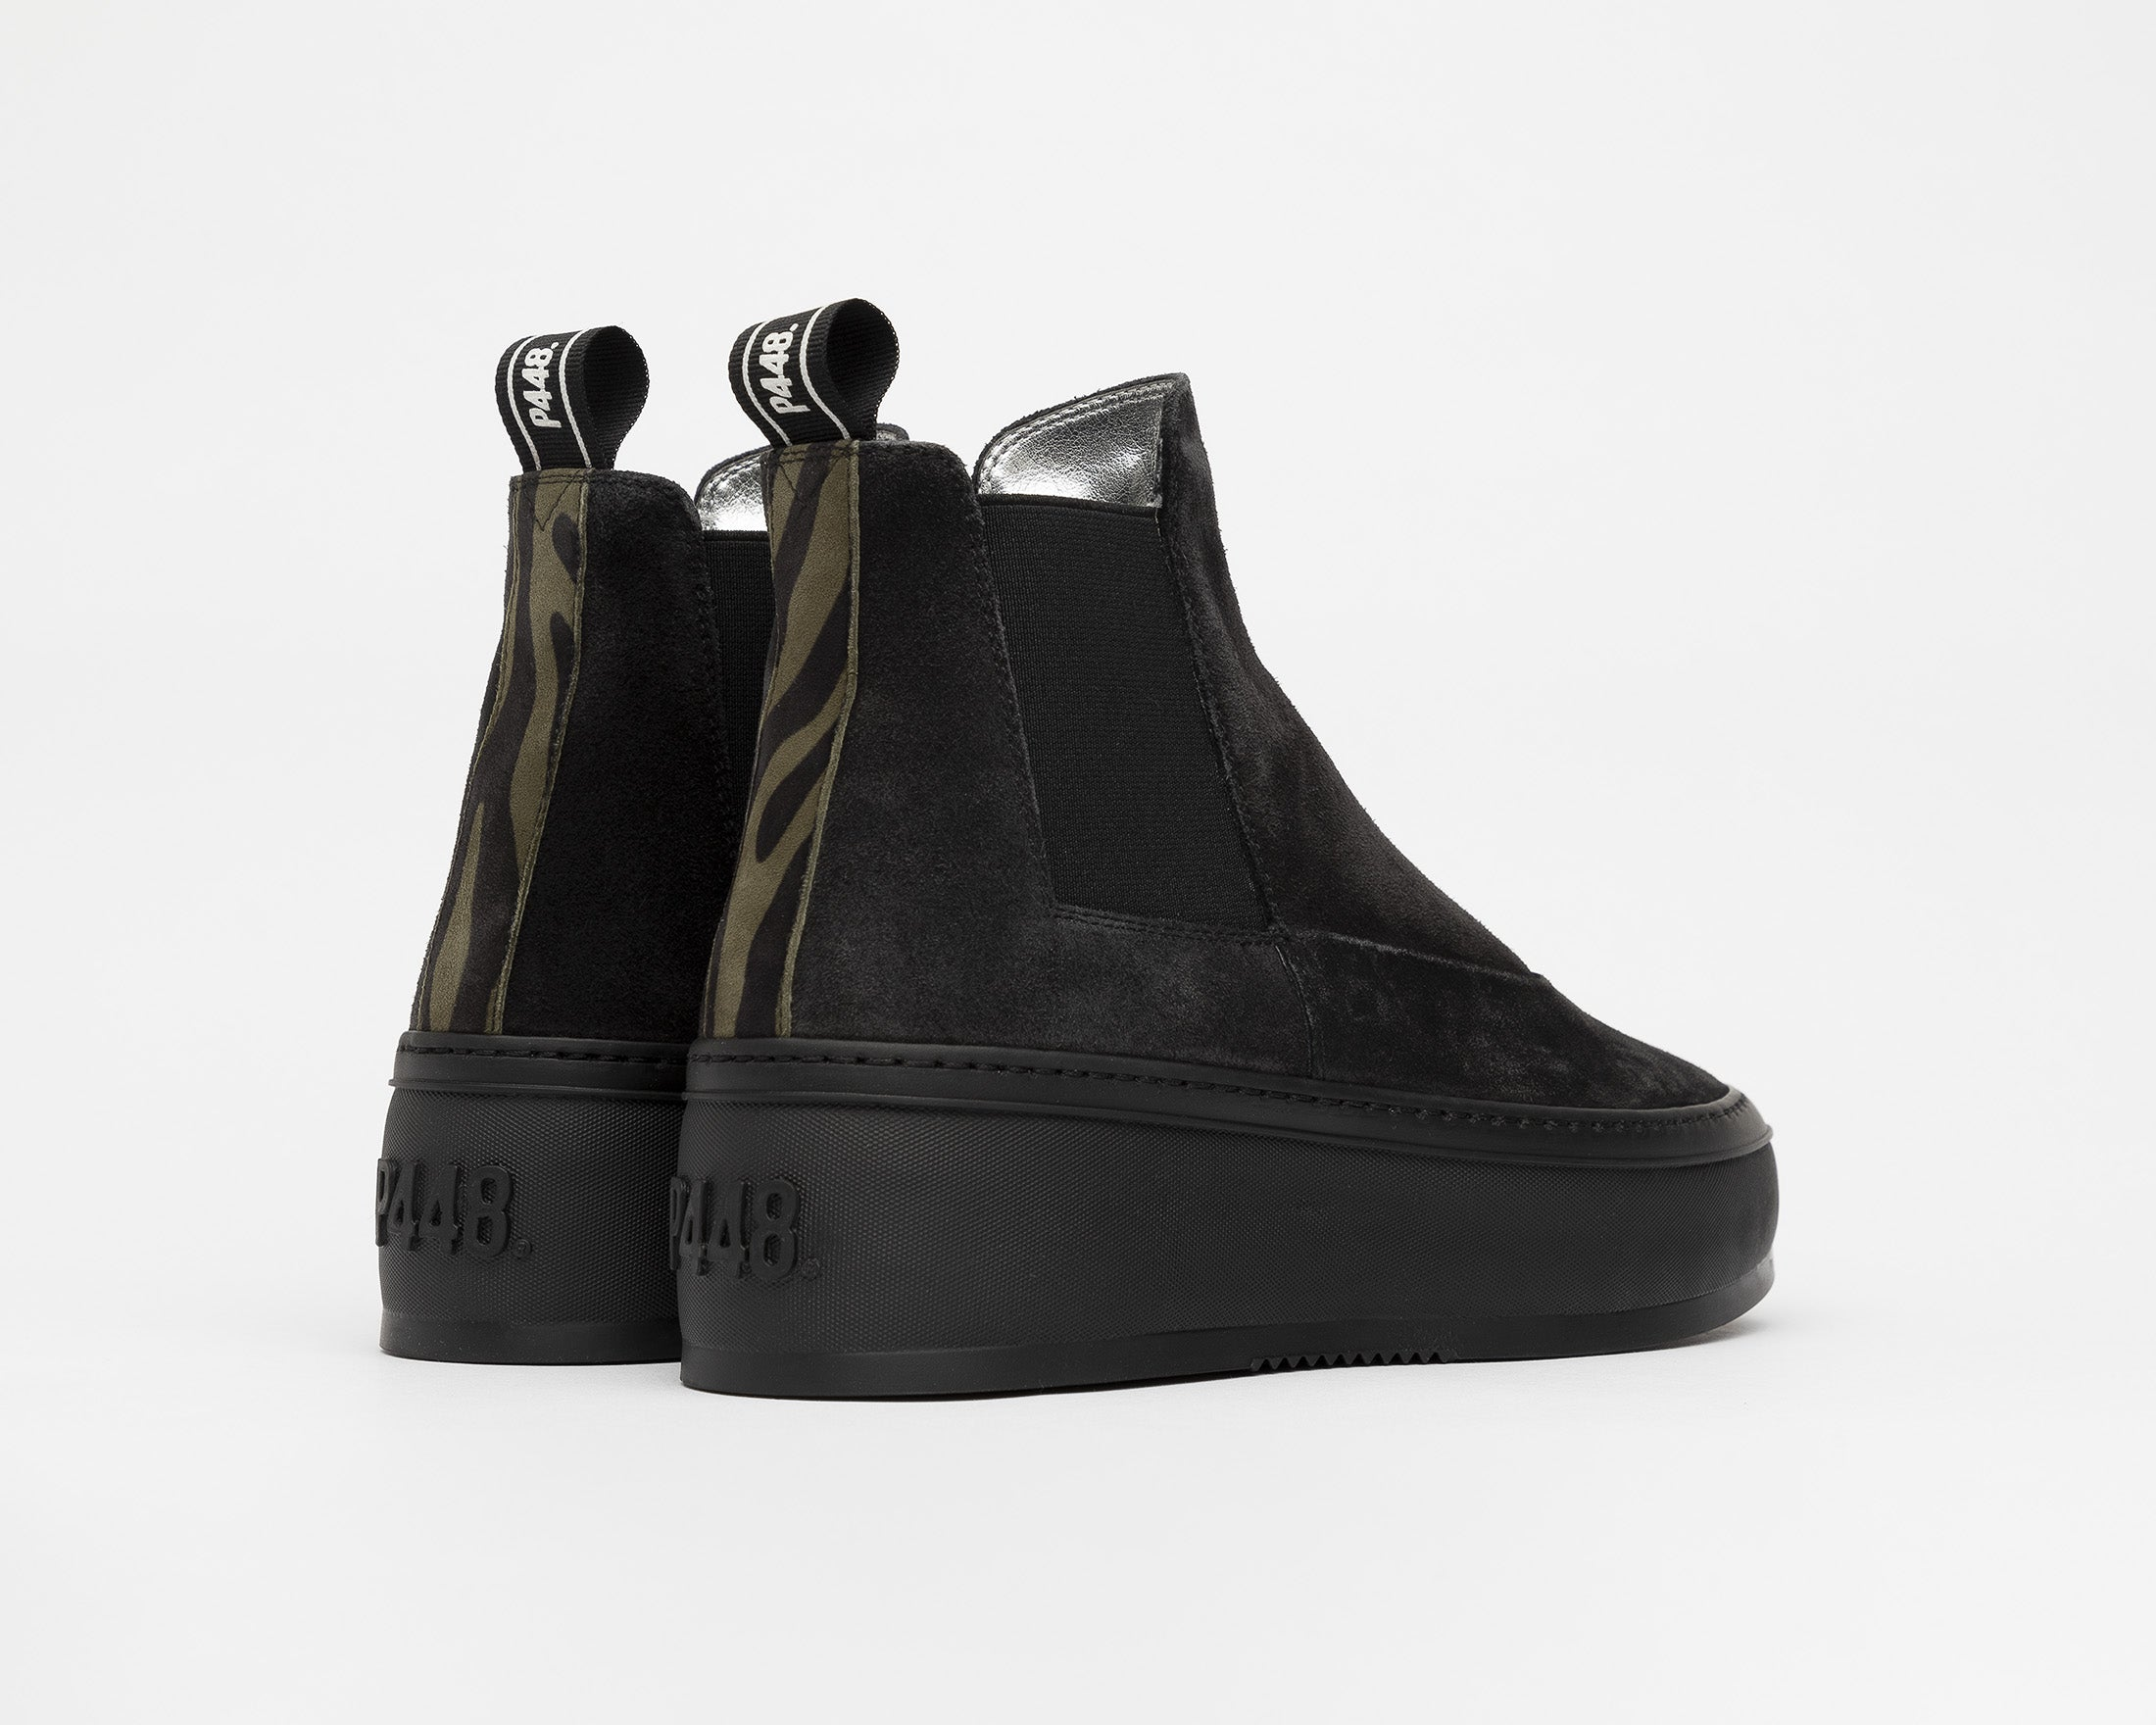 Lucy Chunky Platform Sneaker in Black/Army Zeb - Back